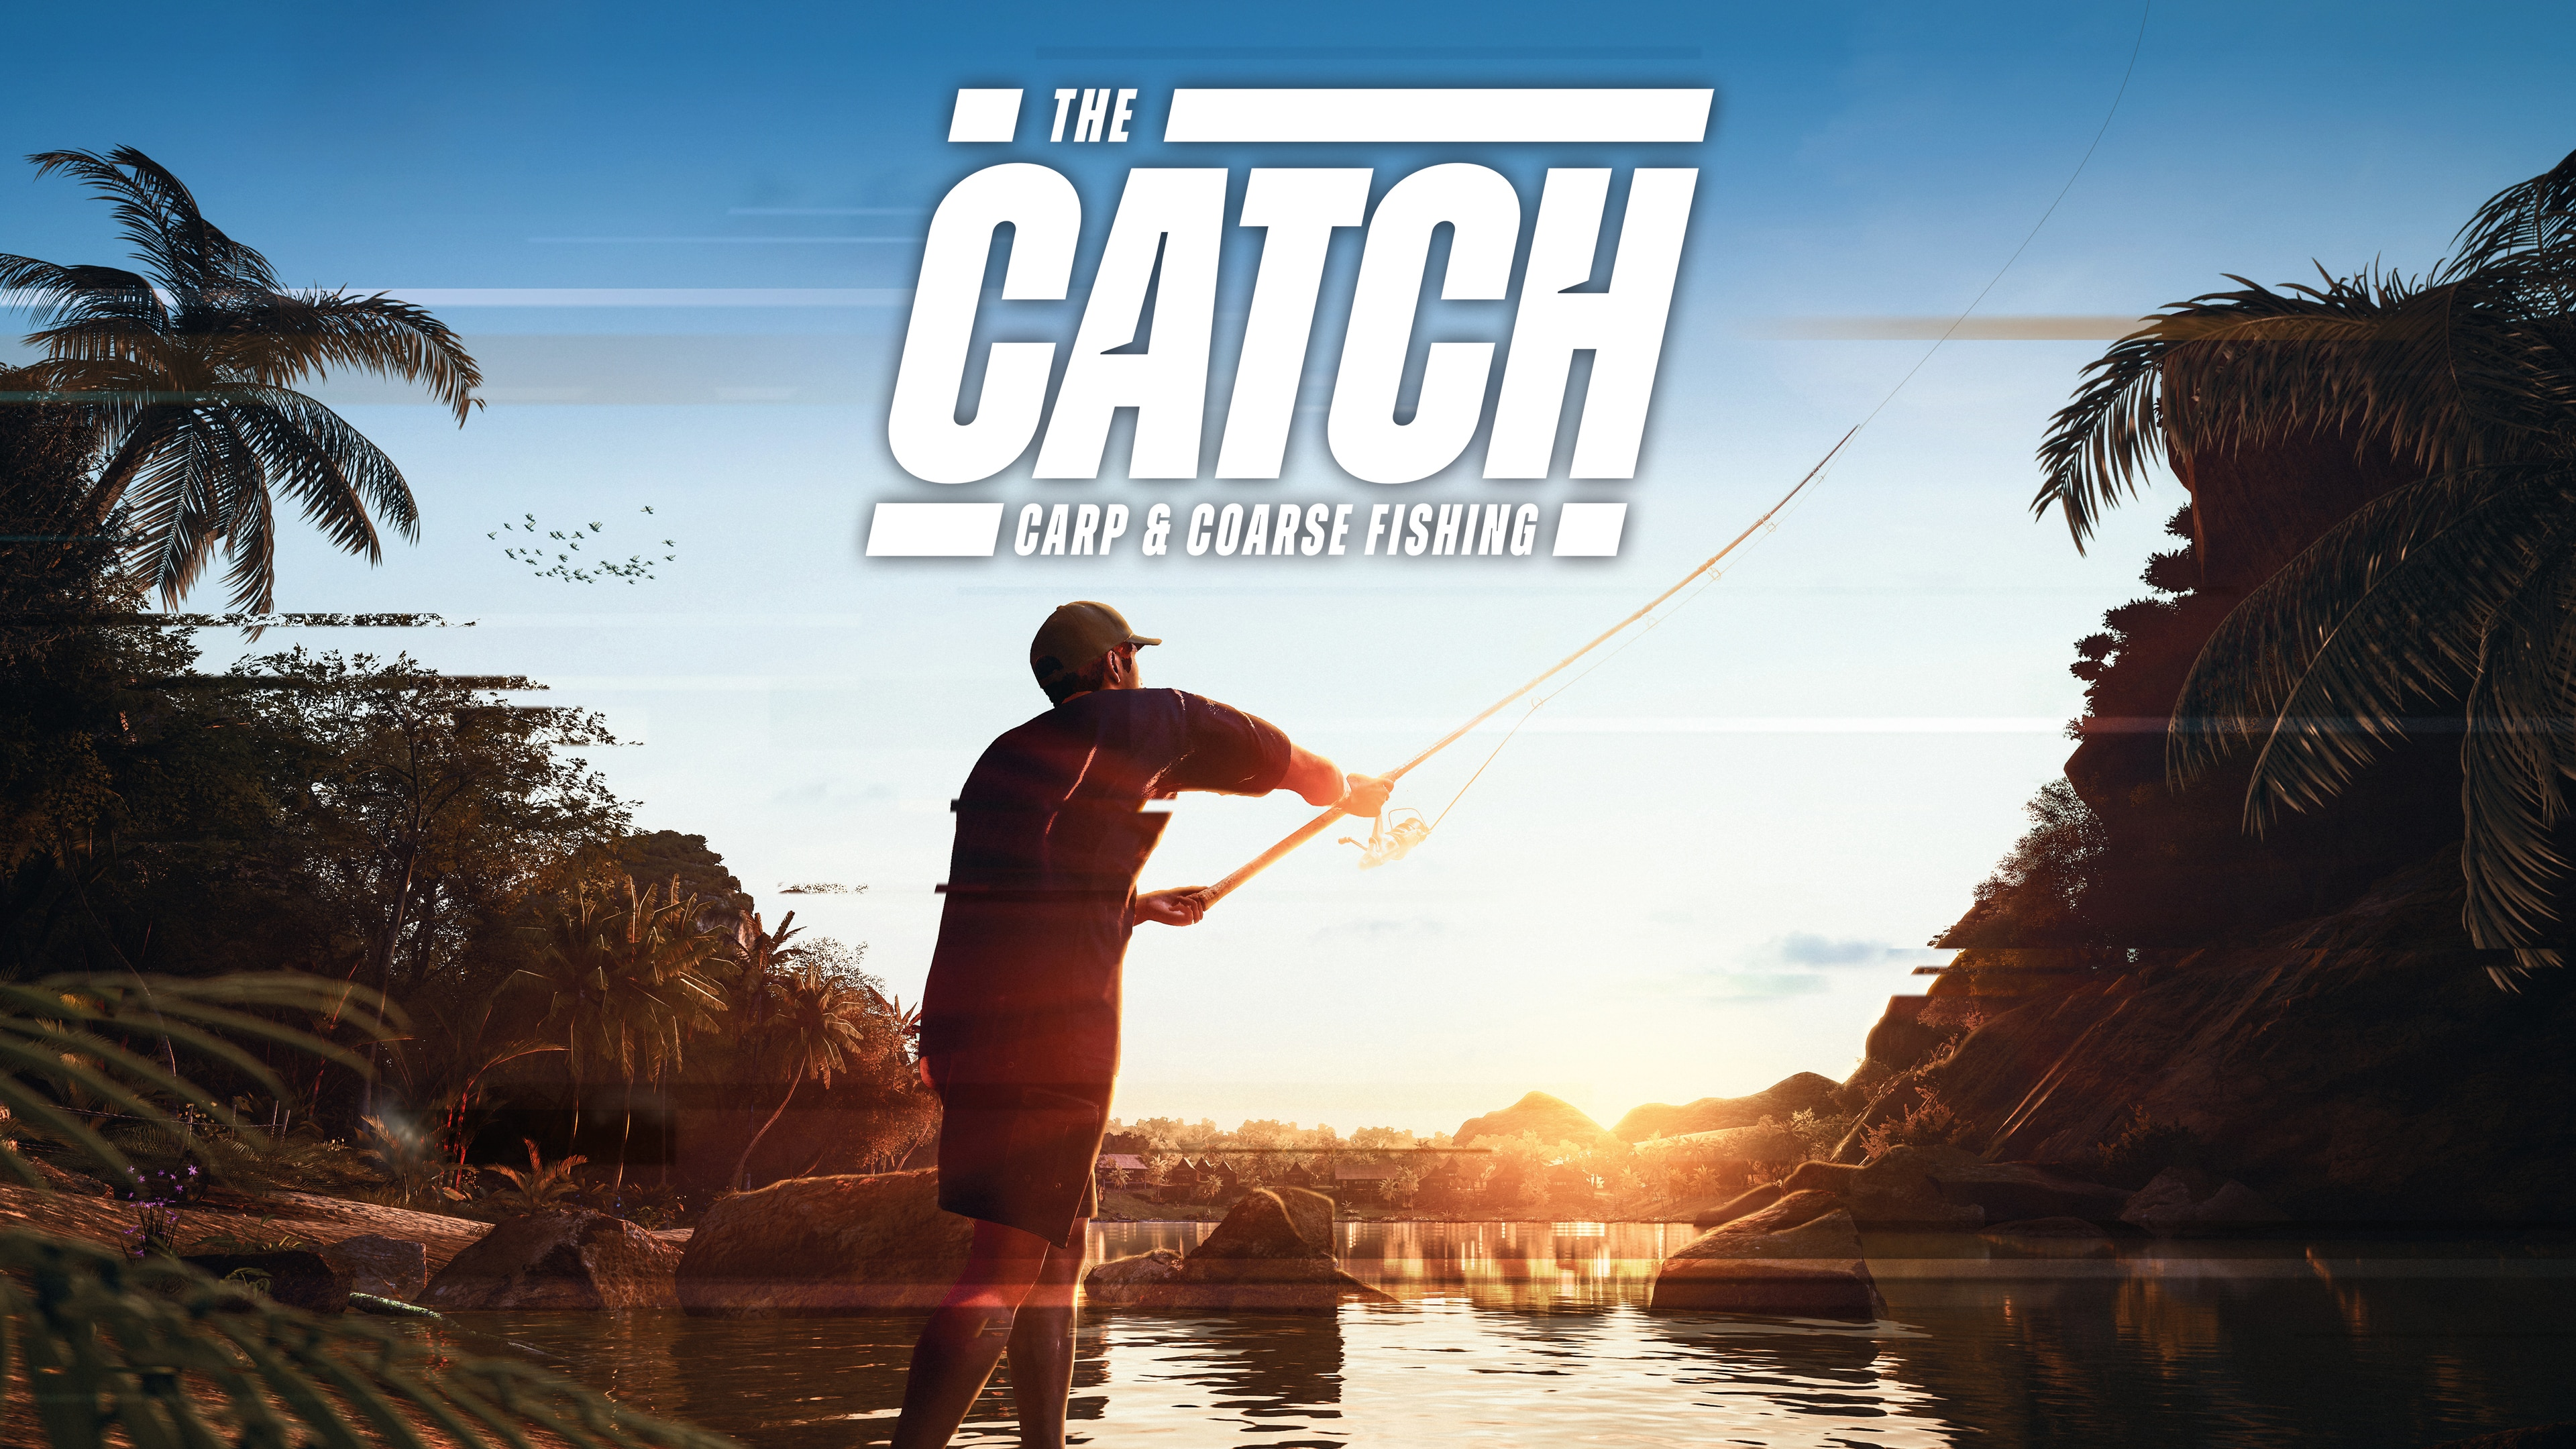 The Catch: Carp & Coarse Fishing